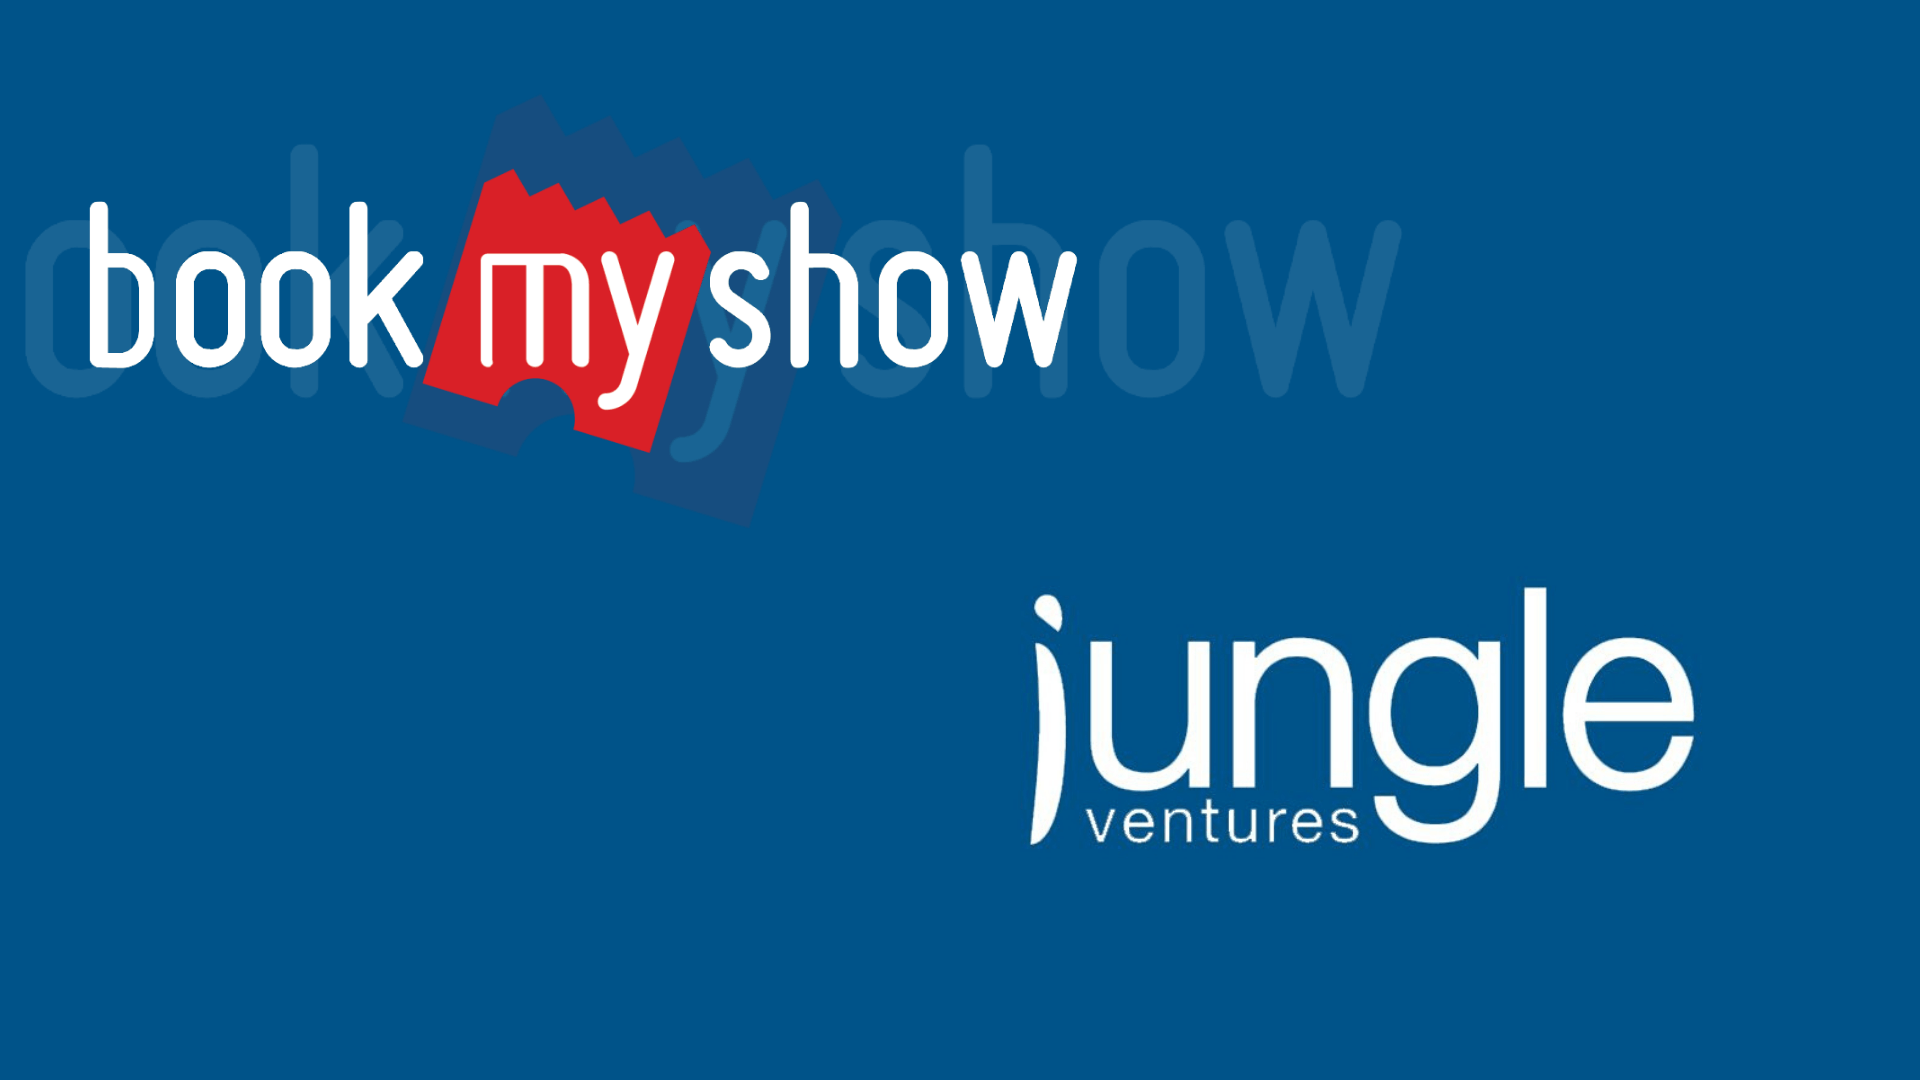 Jungle Ventures Aids BookMyShow in Extending its Reach in South East Asia